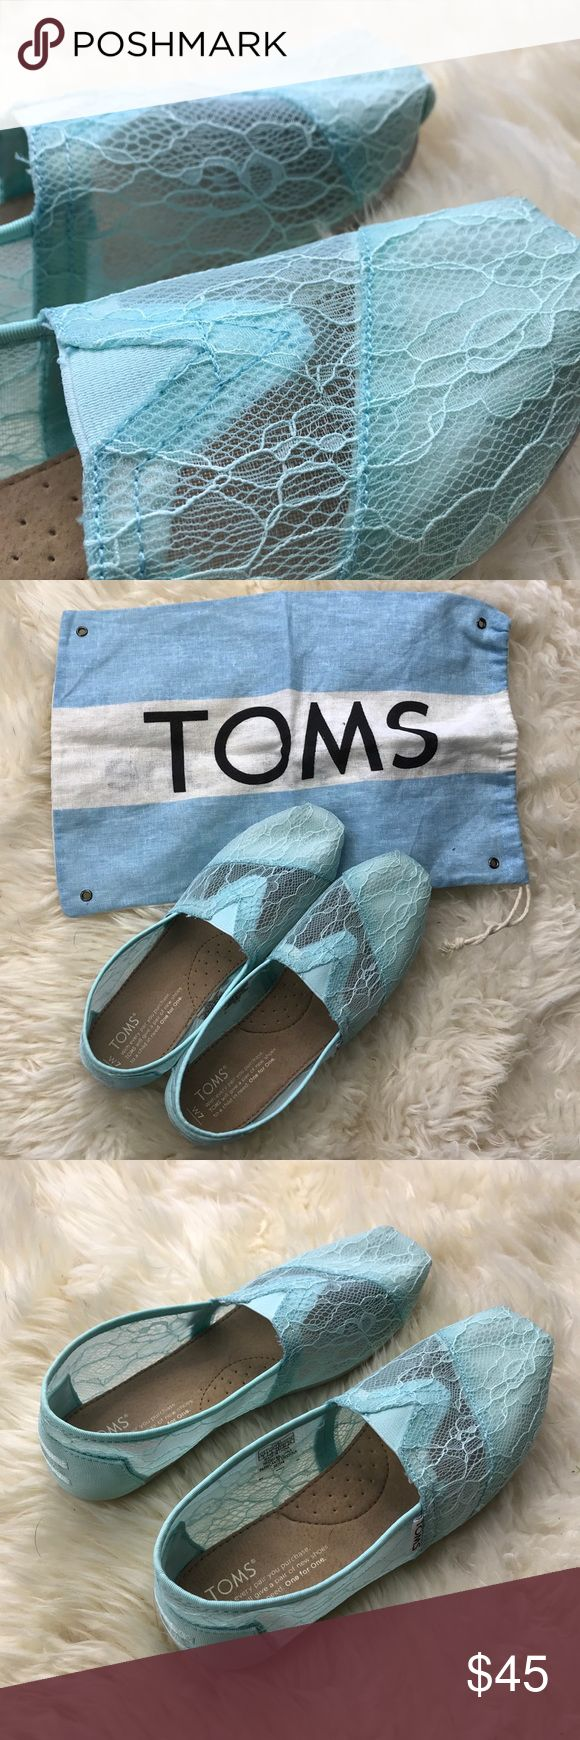 New Mint Lace TOMS! New Mint TOMS! Wore once! Perfect condition! Size 7! Unique hardened lace! Toms Shoes Flats & Loafers